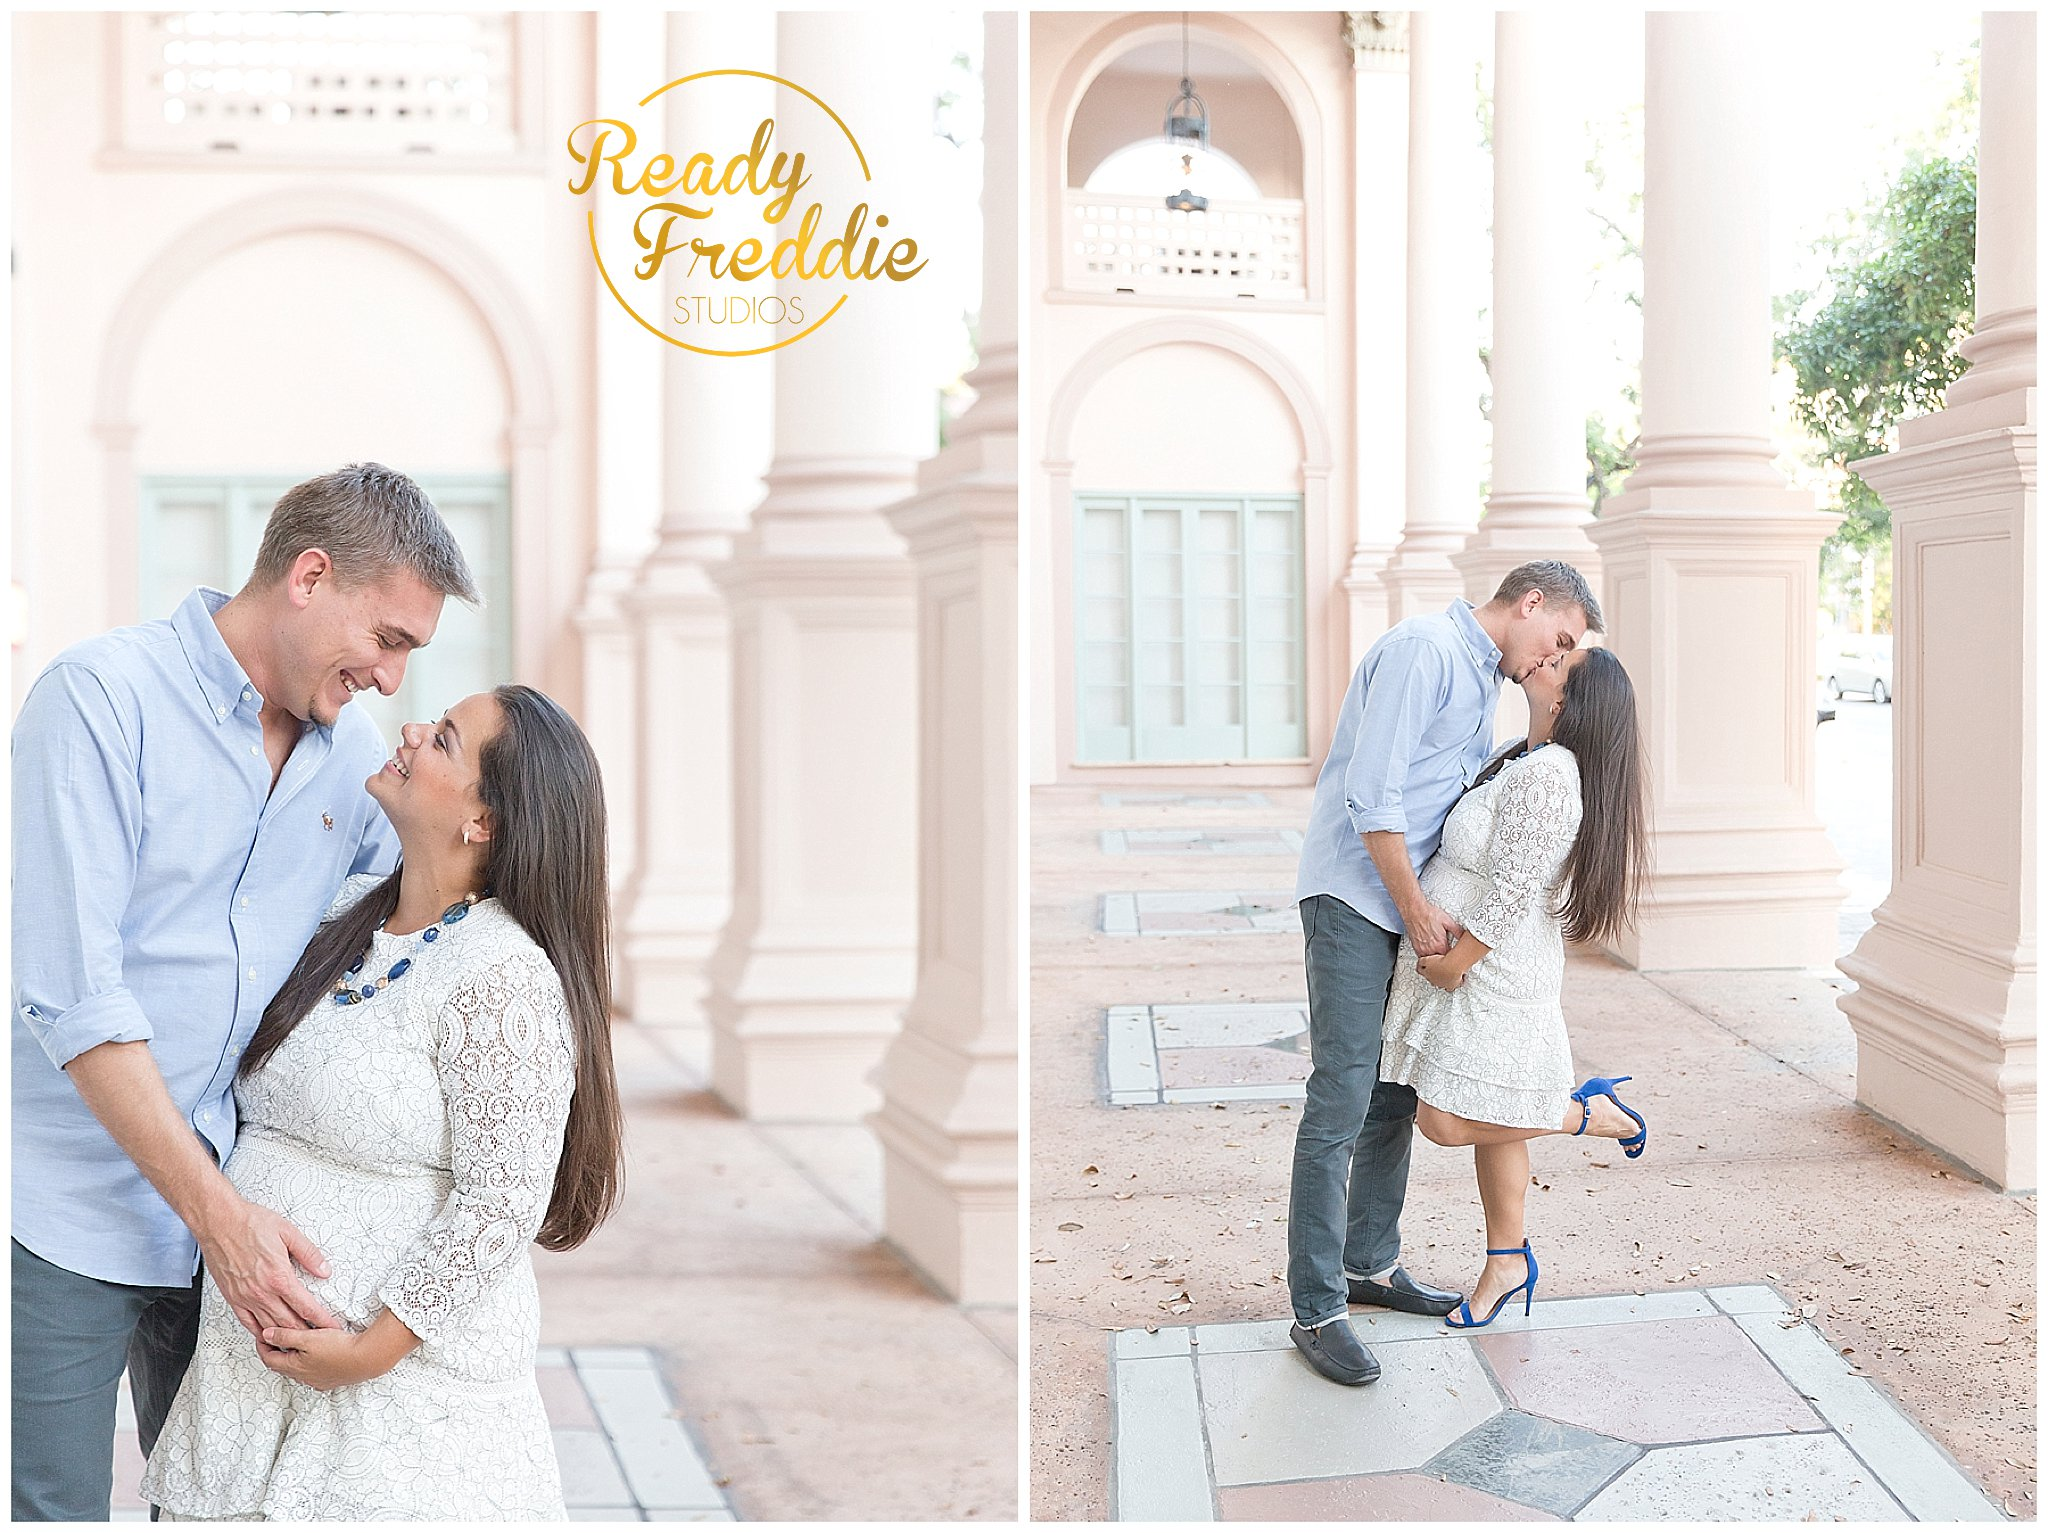 Miami Maternity Photoshoot in Miami FL at the Colonnade Hotel